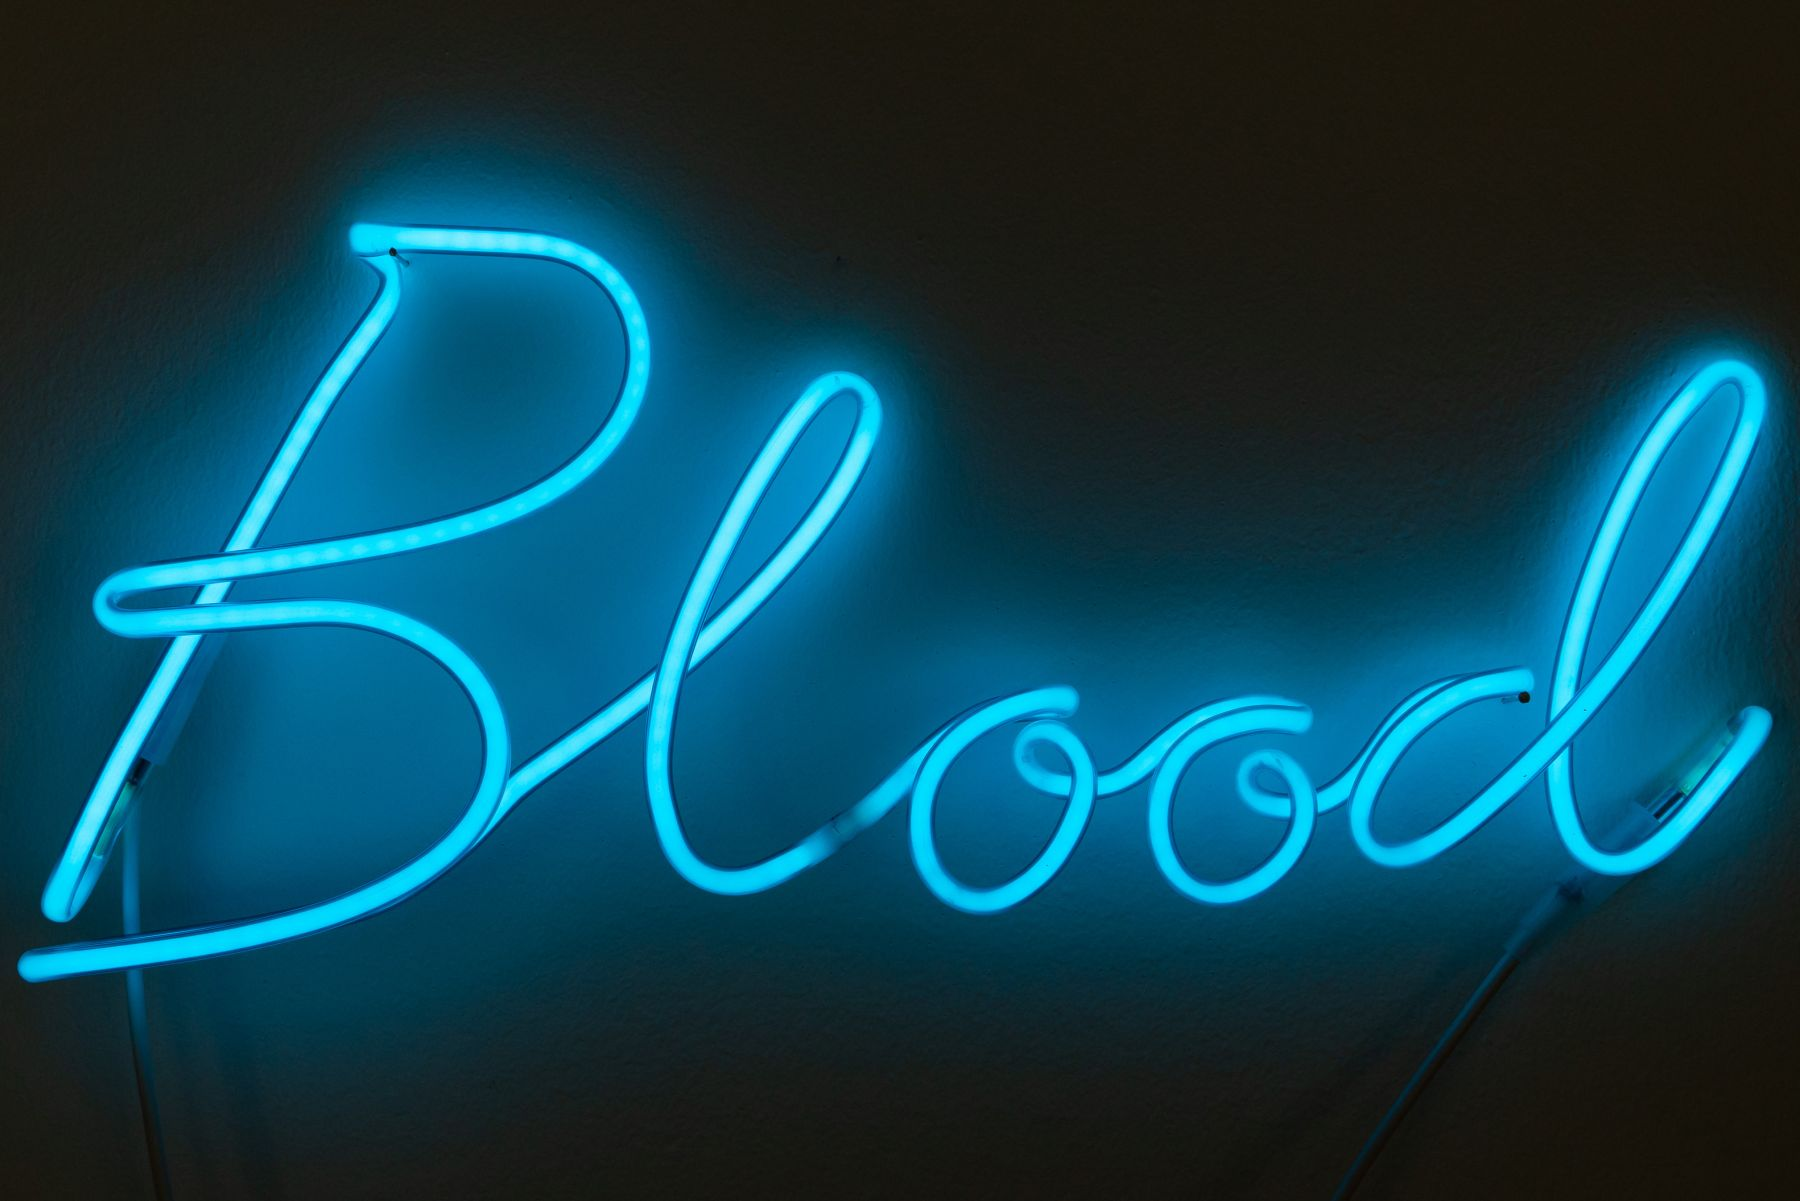 Blood Neon Sculpture from Limelight by Conor McCreedy